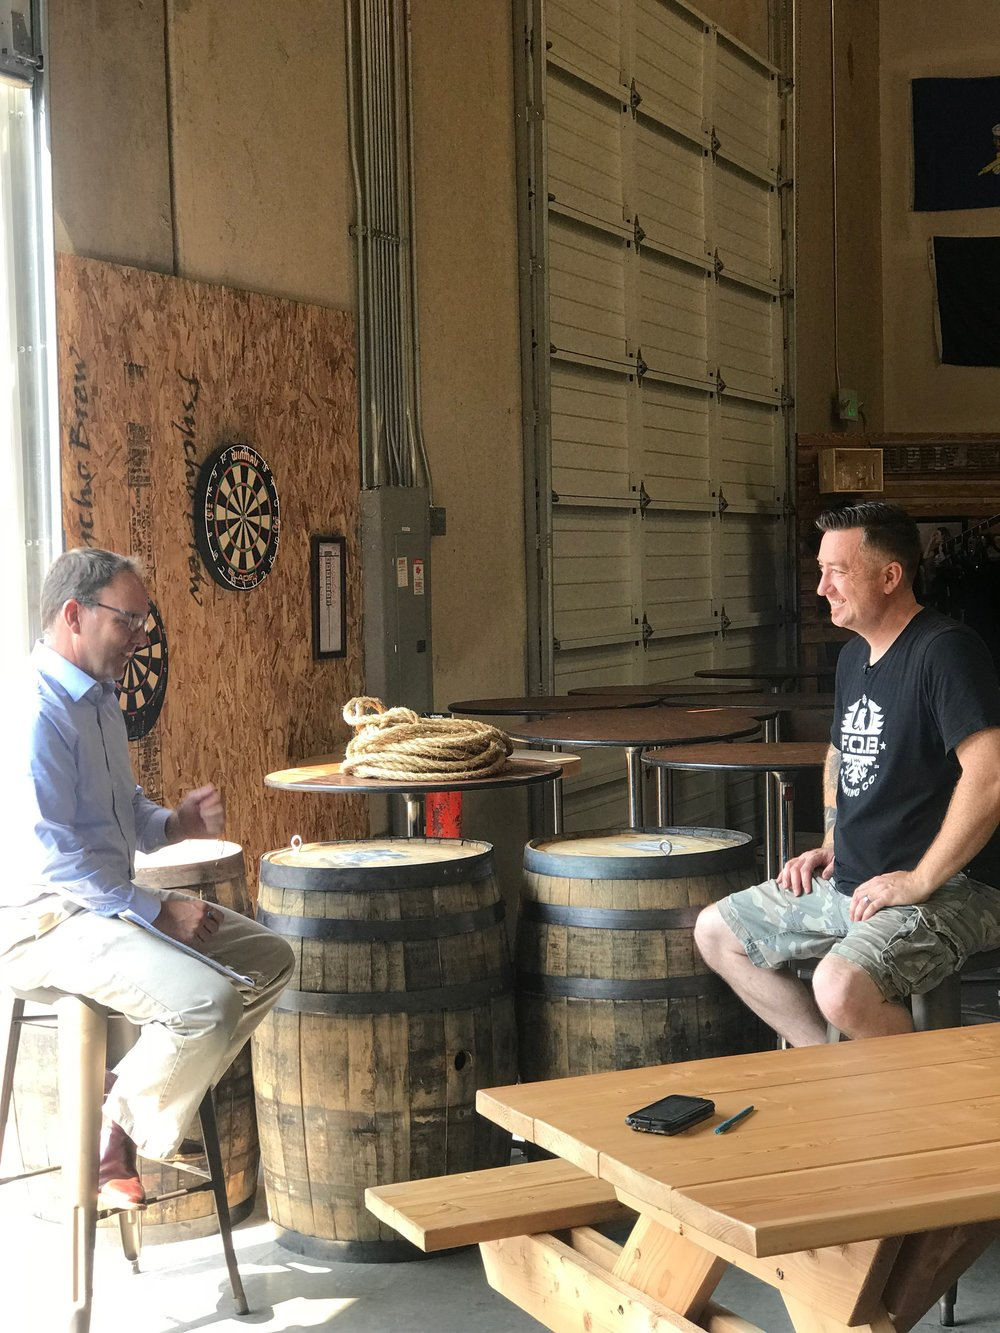 King 5 News - Veteran's brewery in South Sound benefits fellow veteransAn Army veteran employing other veterans at his South Sound brewery hopes to open breweries at every military base in the U.S.Author: Drew MikkelsenPublished: 3:41 PM PDT July 30, 2018